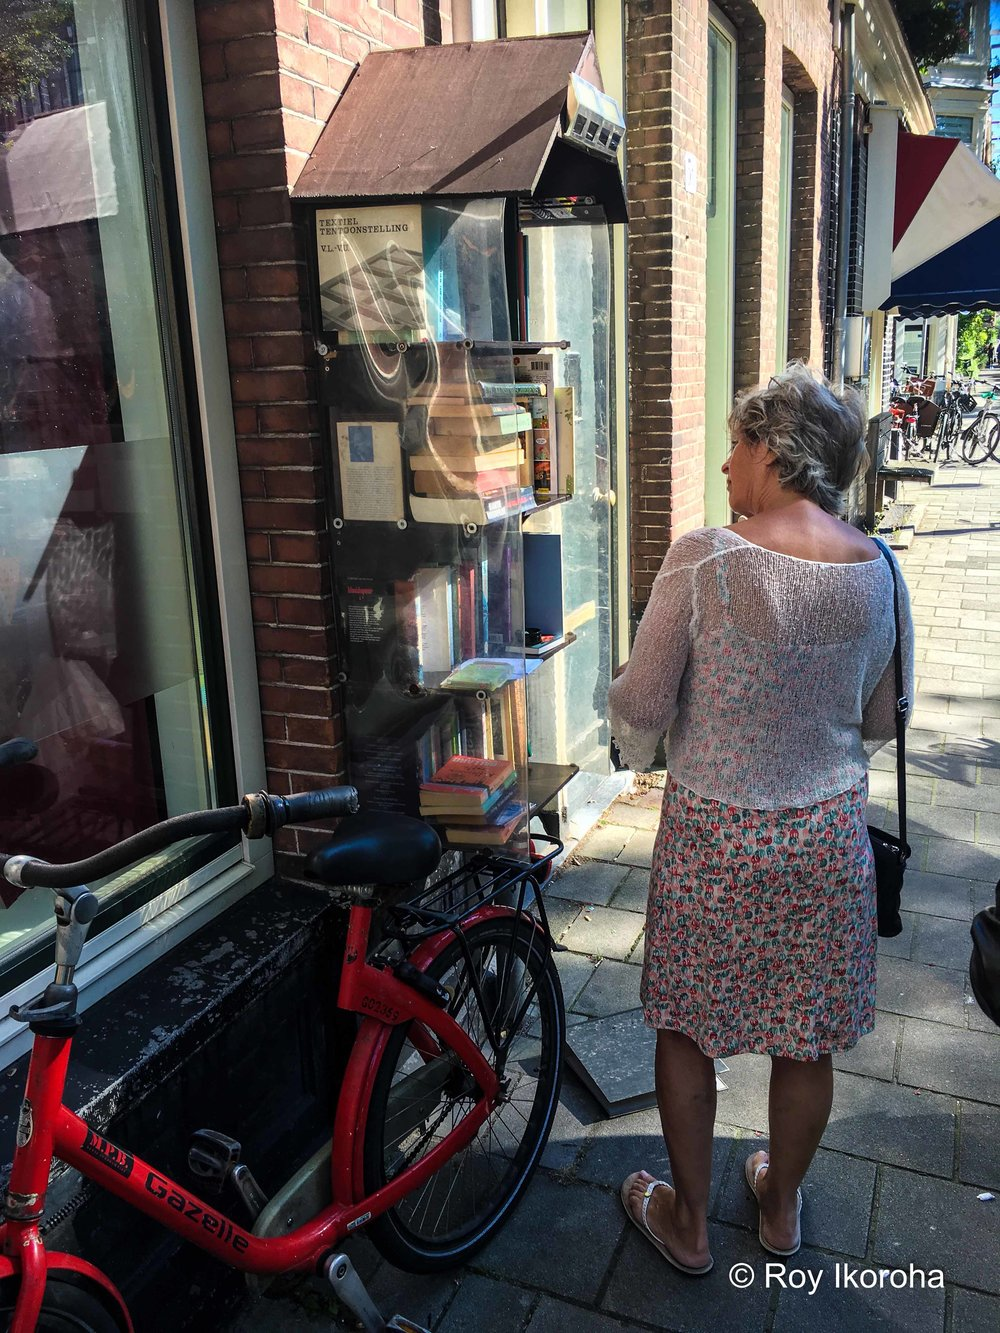 Passer-by deciding on what book to pick up at open street bookcase | Bosboom Toussaintstraat, Amsterdam, Netherlands